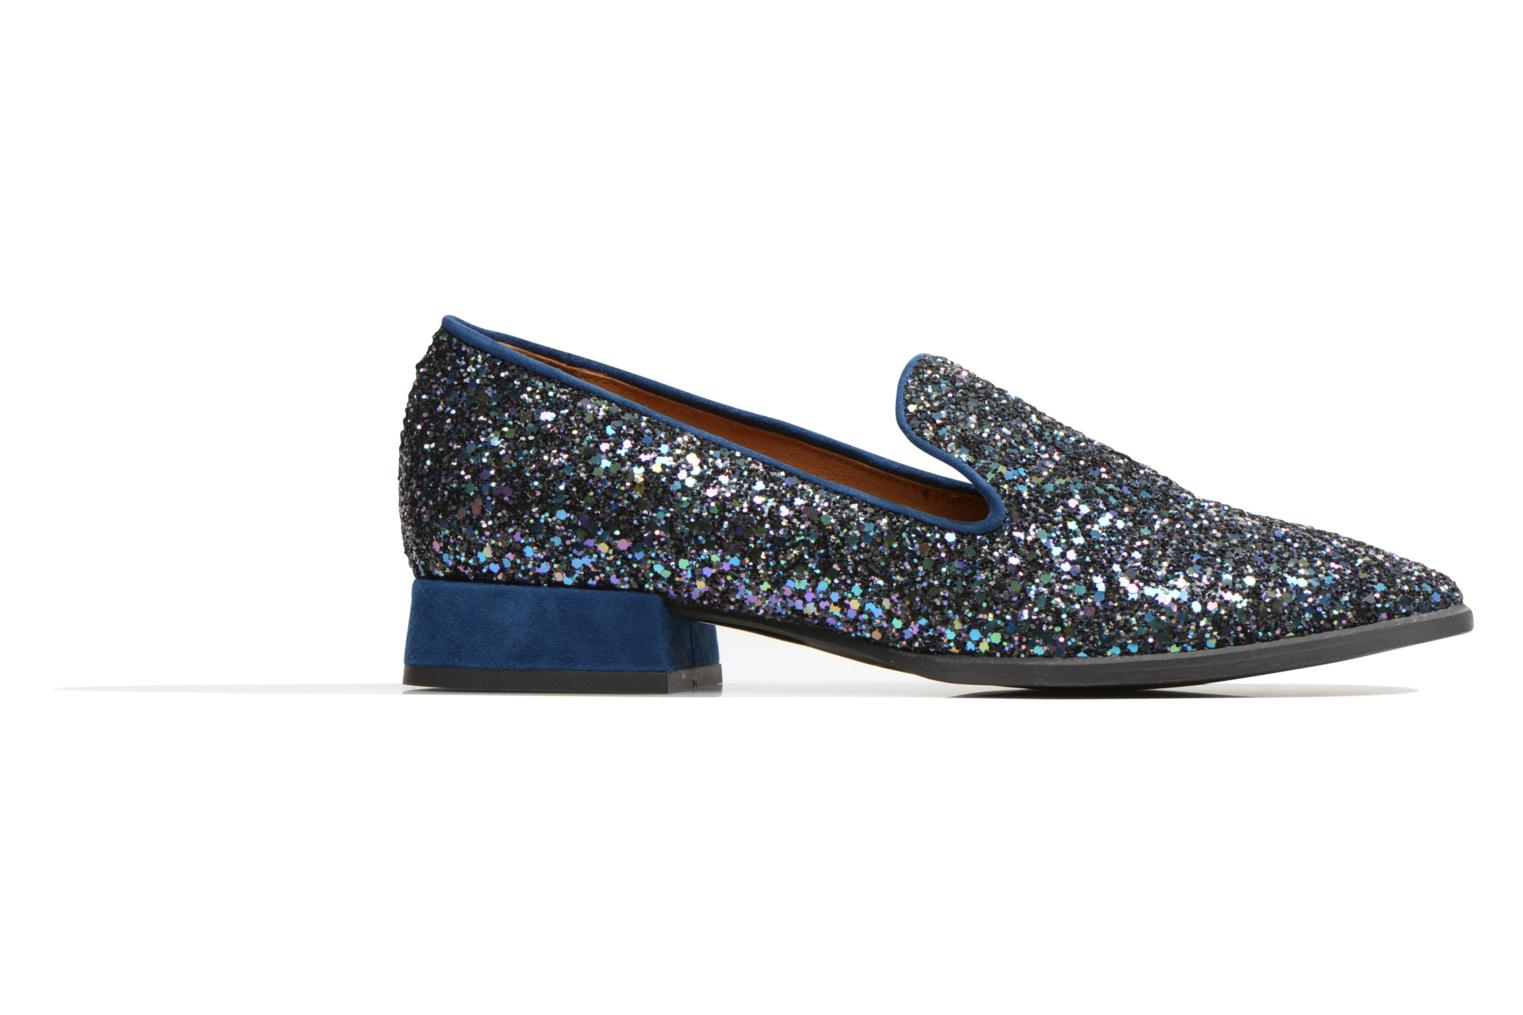 Marques Chaussure femme SARENZA HAPPY10 femme Merry Mocassin In the Navy